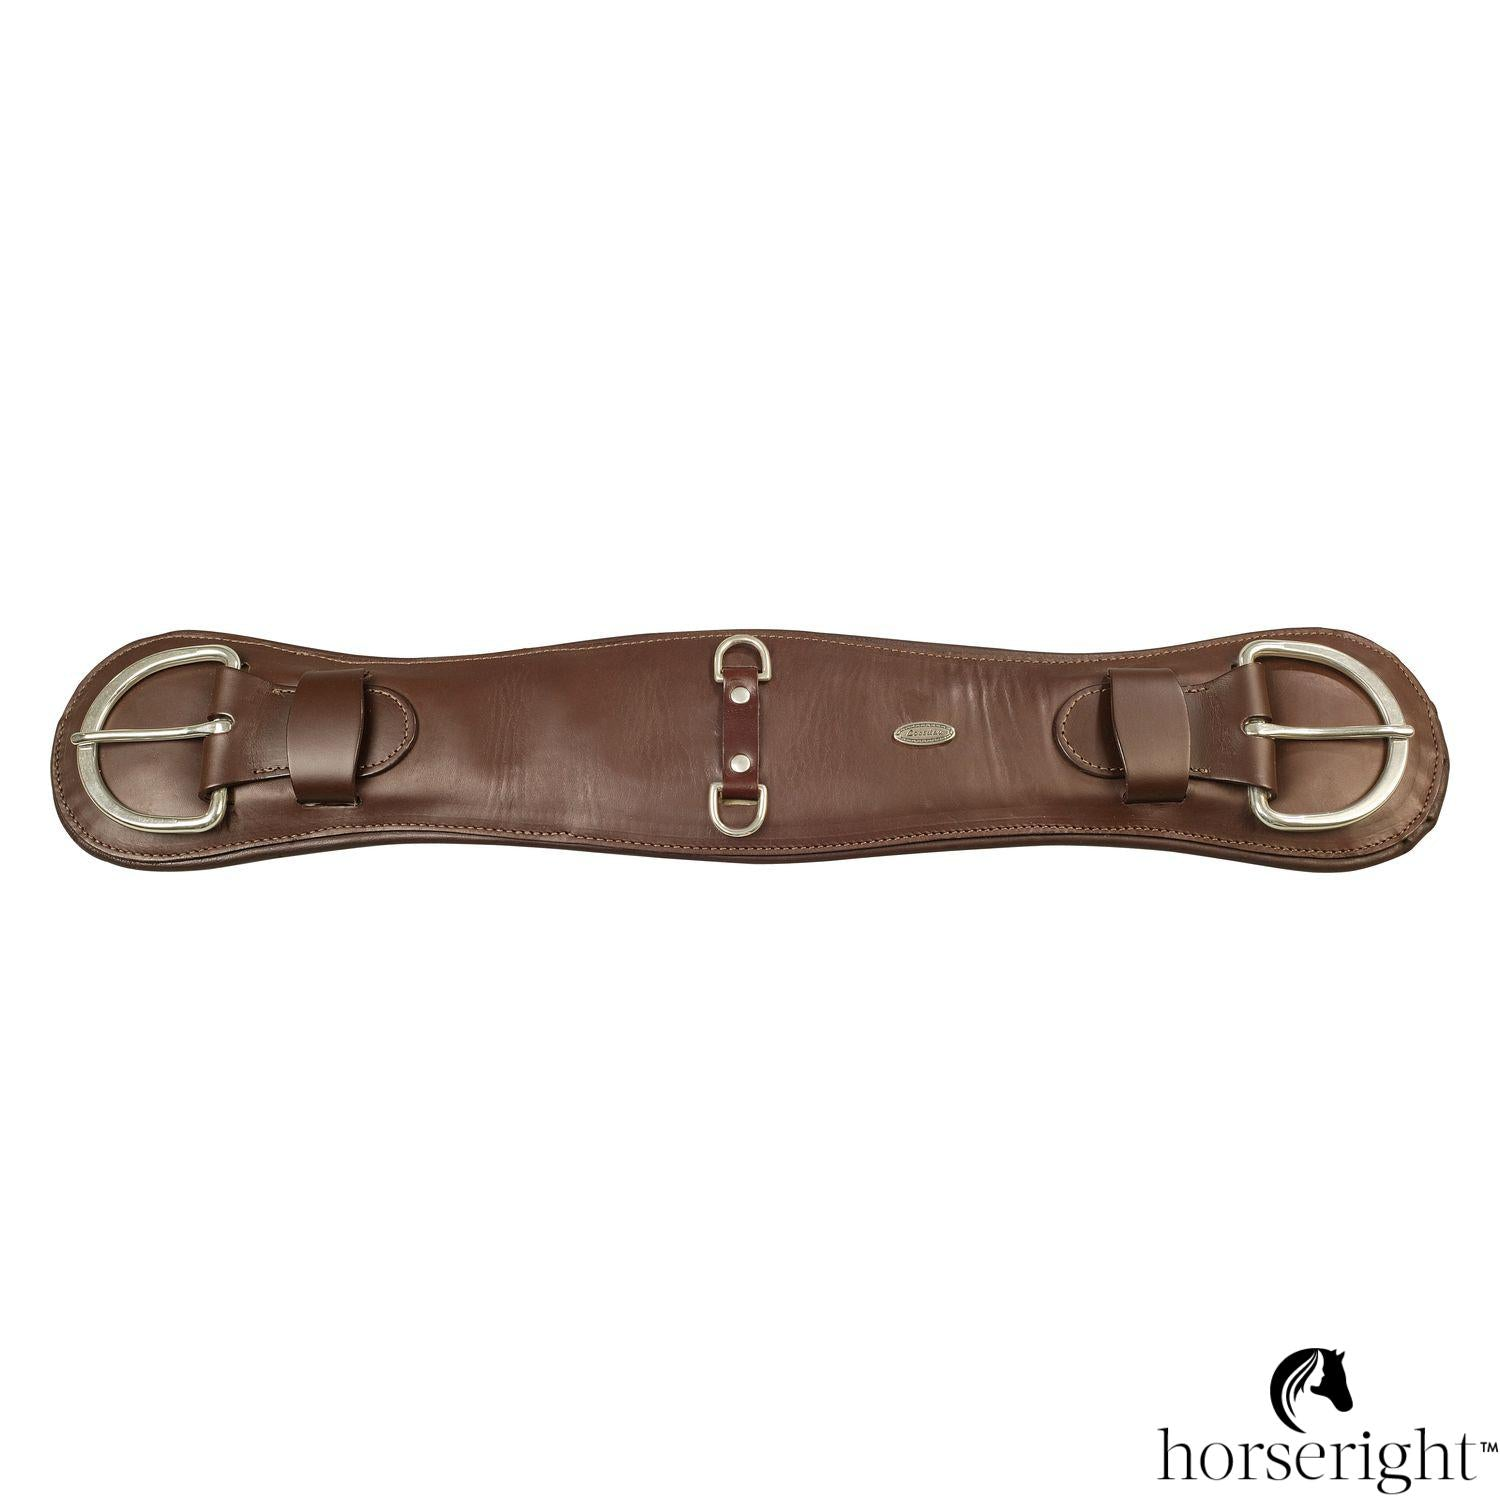 Western Saddle Girth 'Americano'